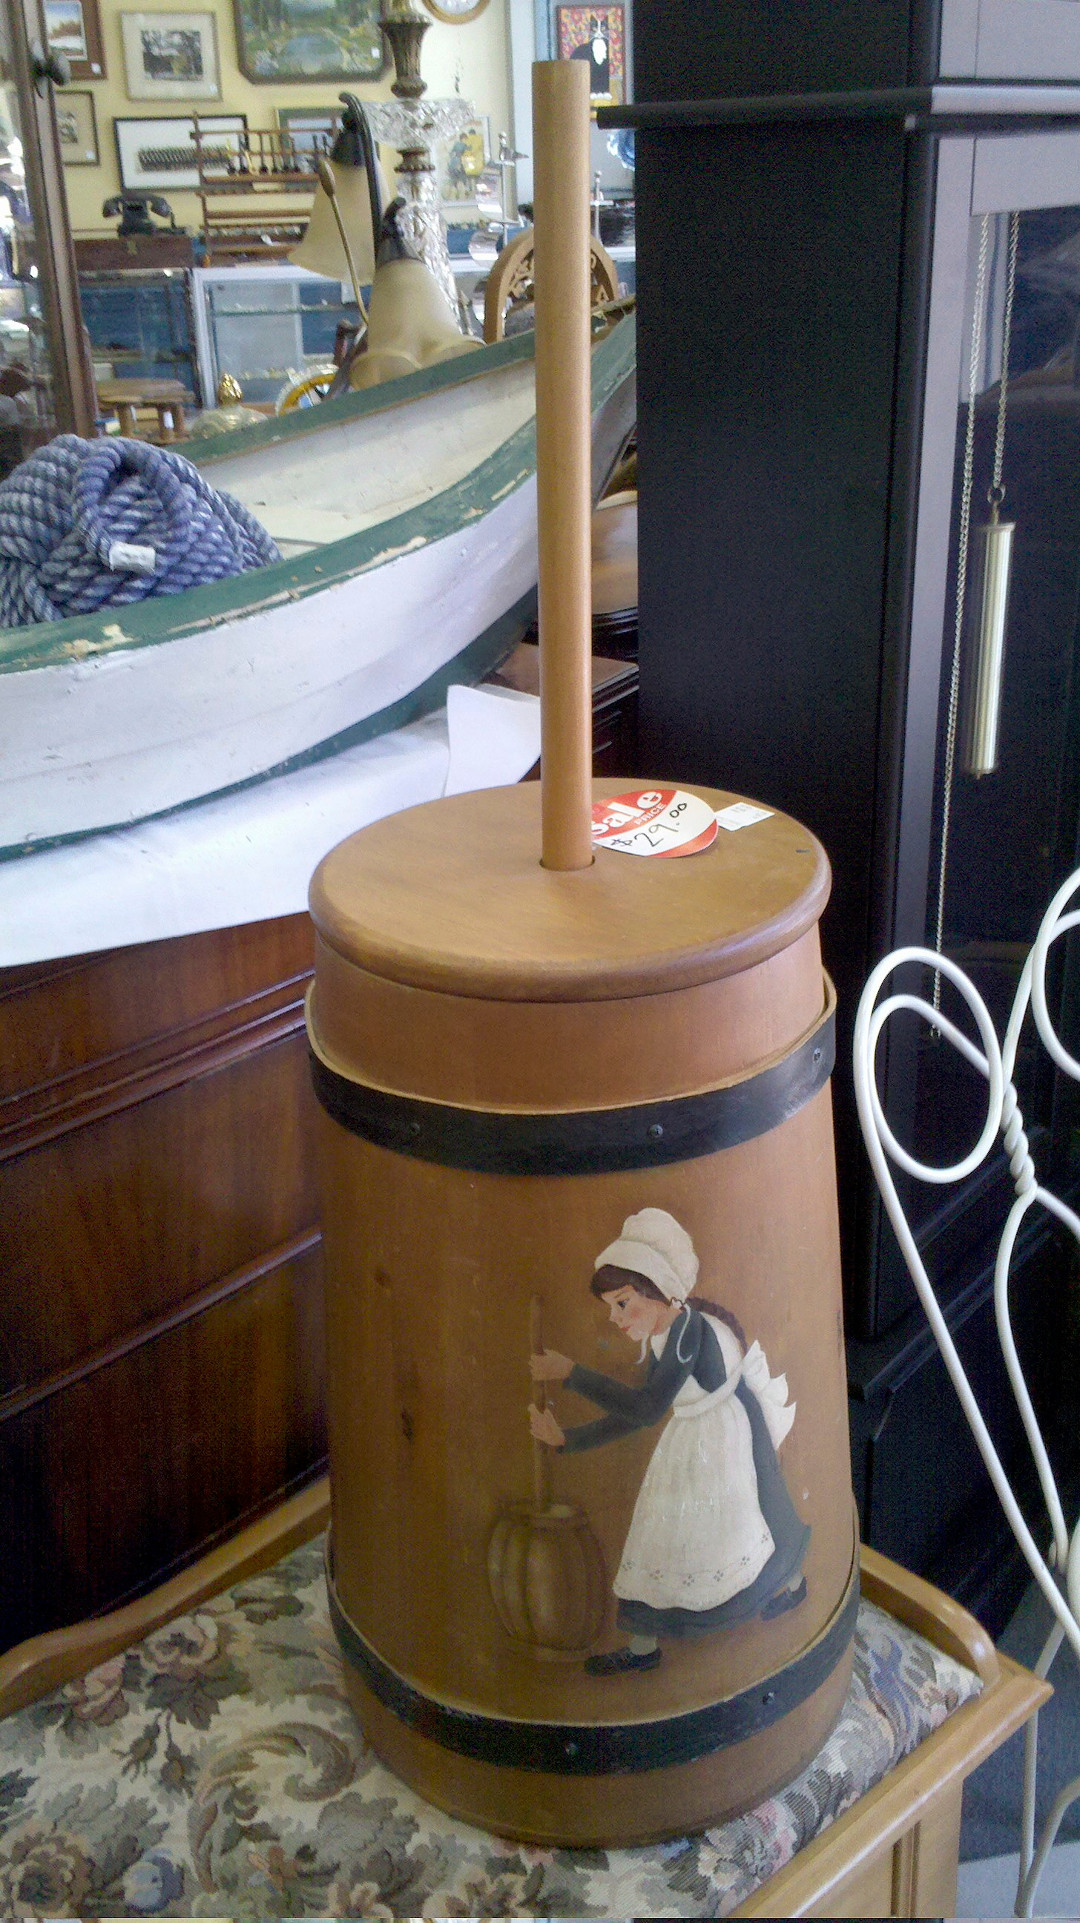 How to read and write gaelic - A Meta Churn A Butter Churn With A Painting Of A Butter Churn On It